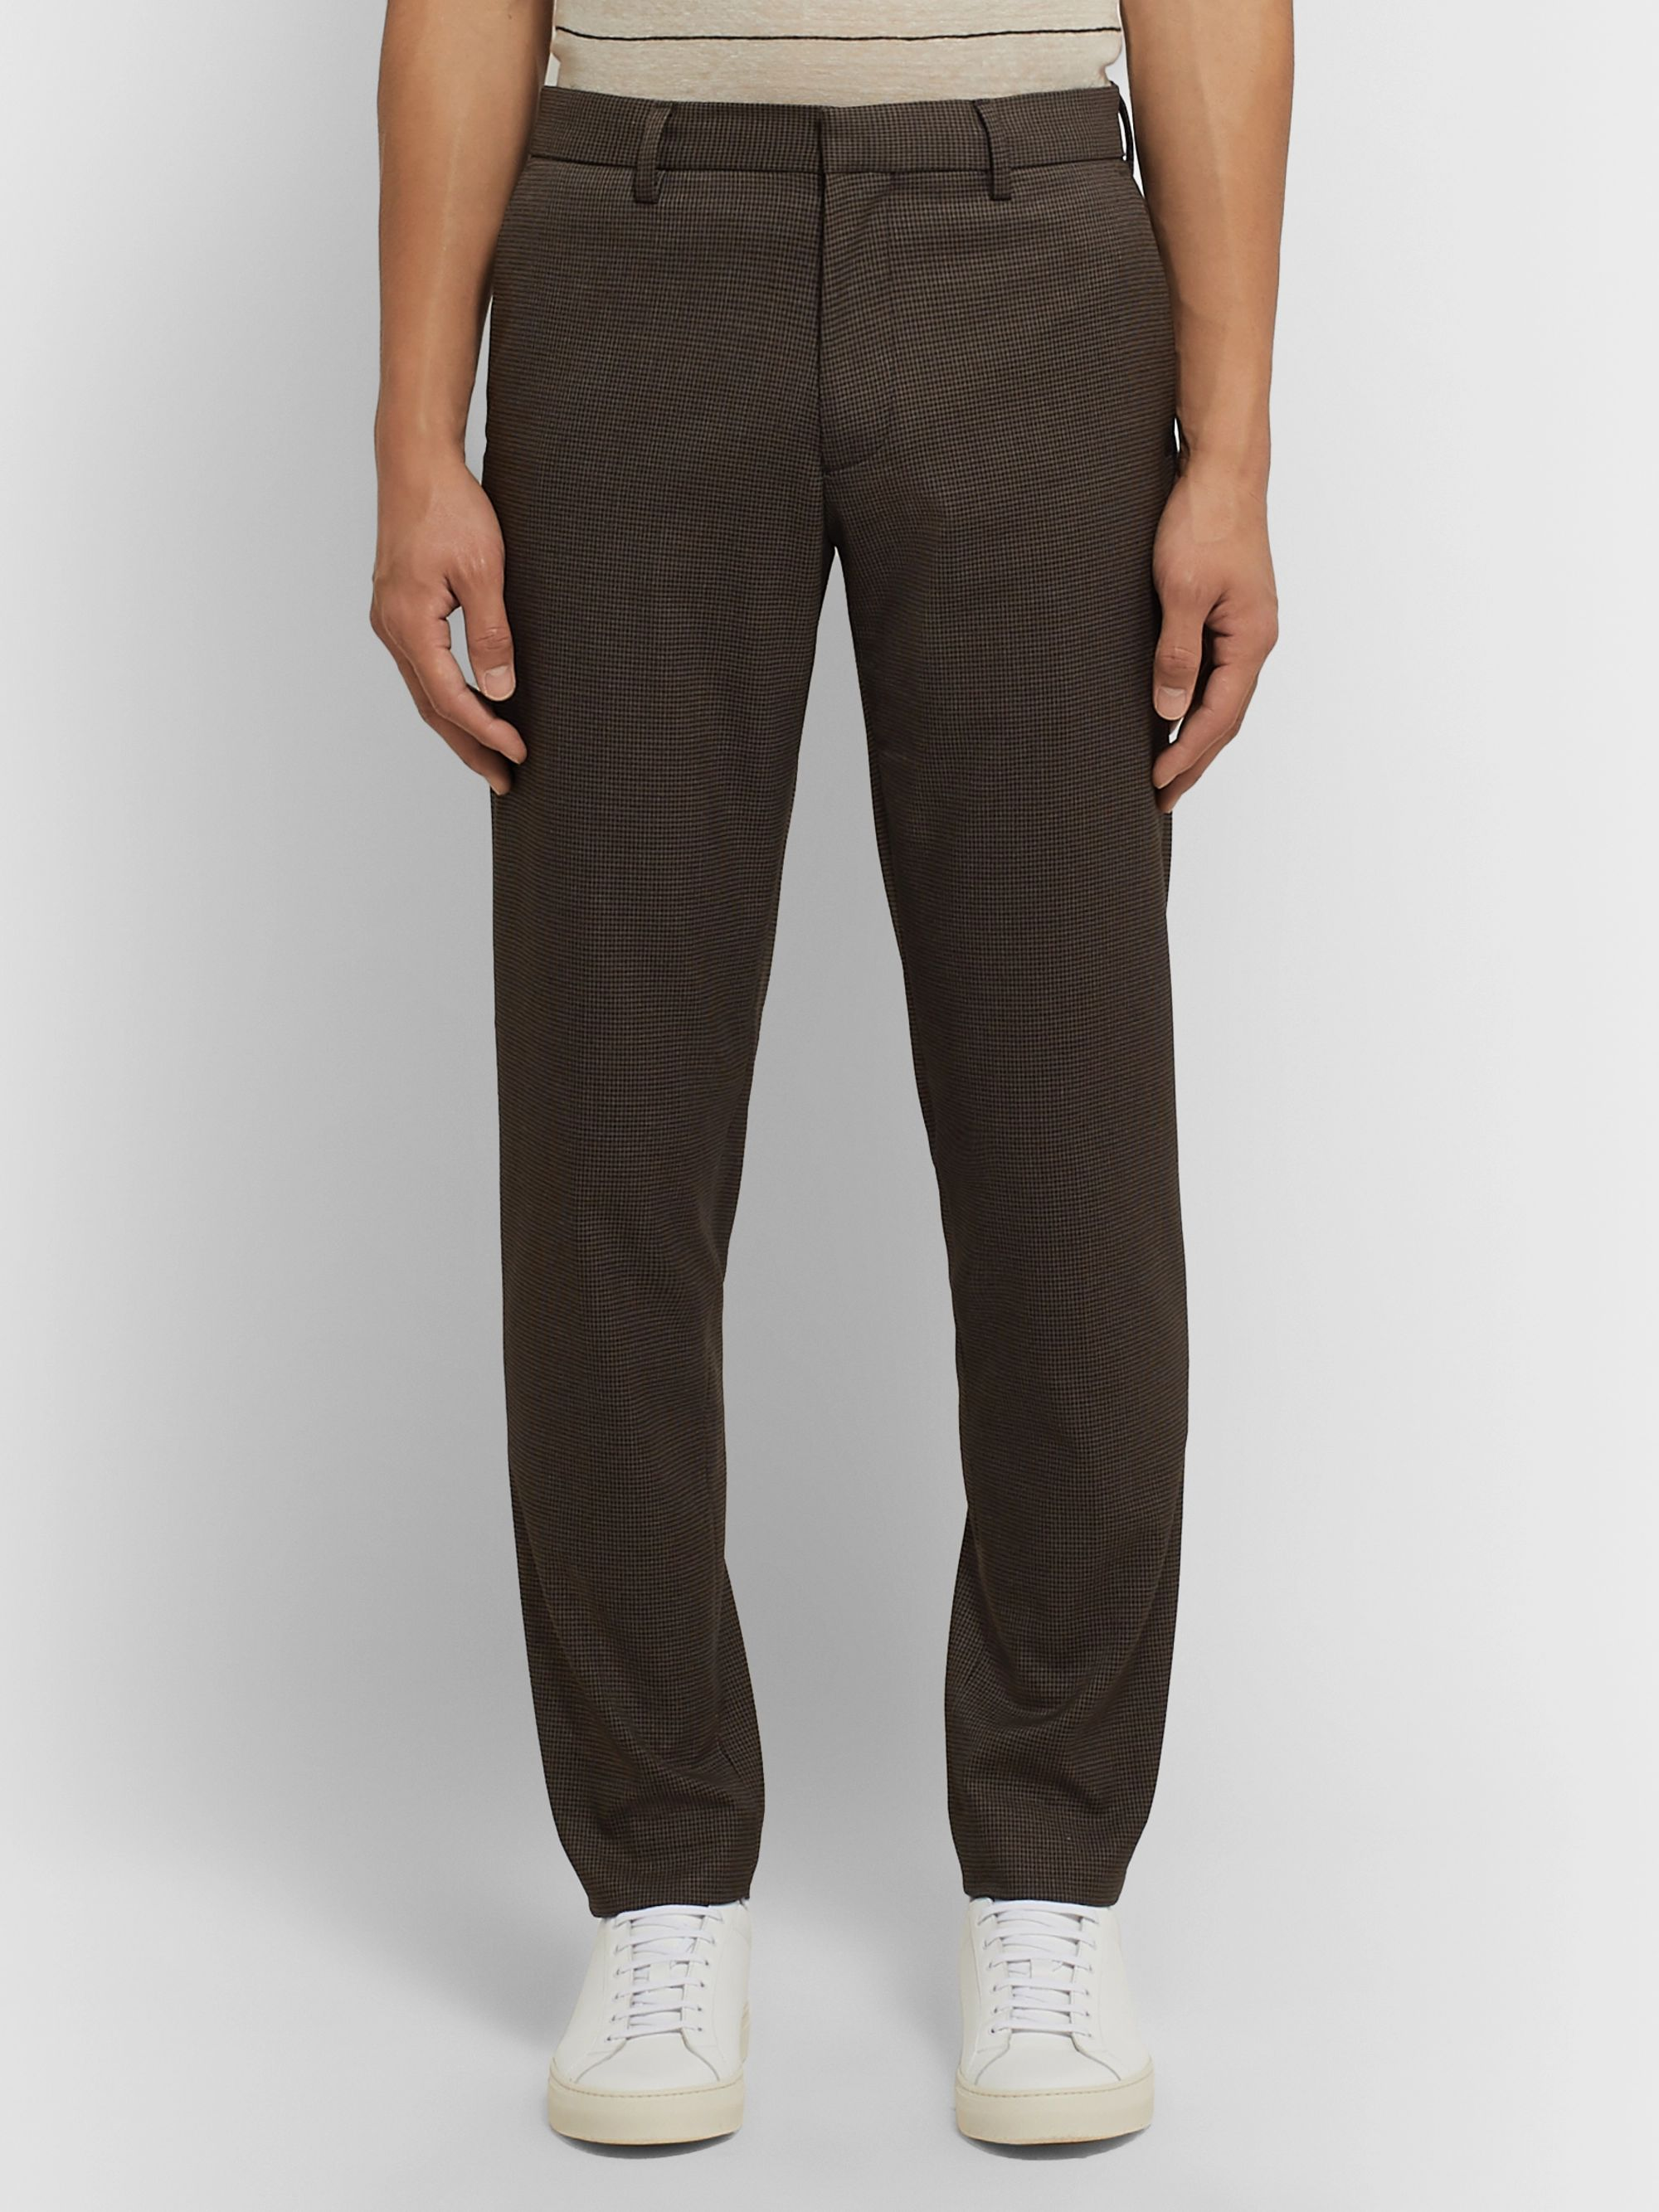 Club Monaco Brown Sutton Slim-Fit Puppytooth Woven Trousers